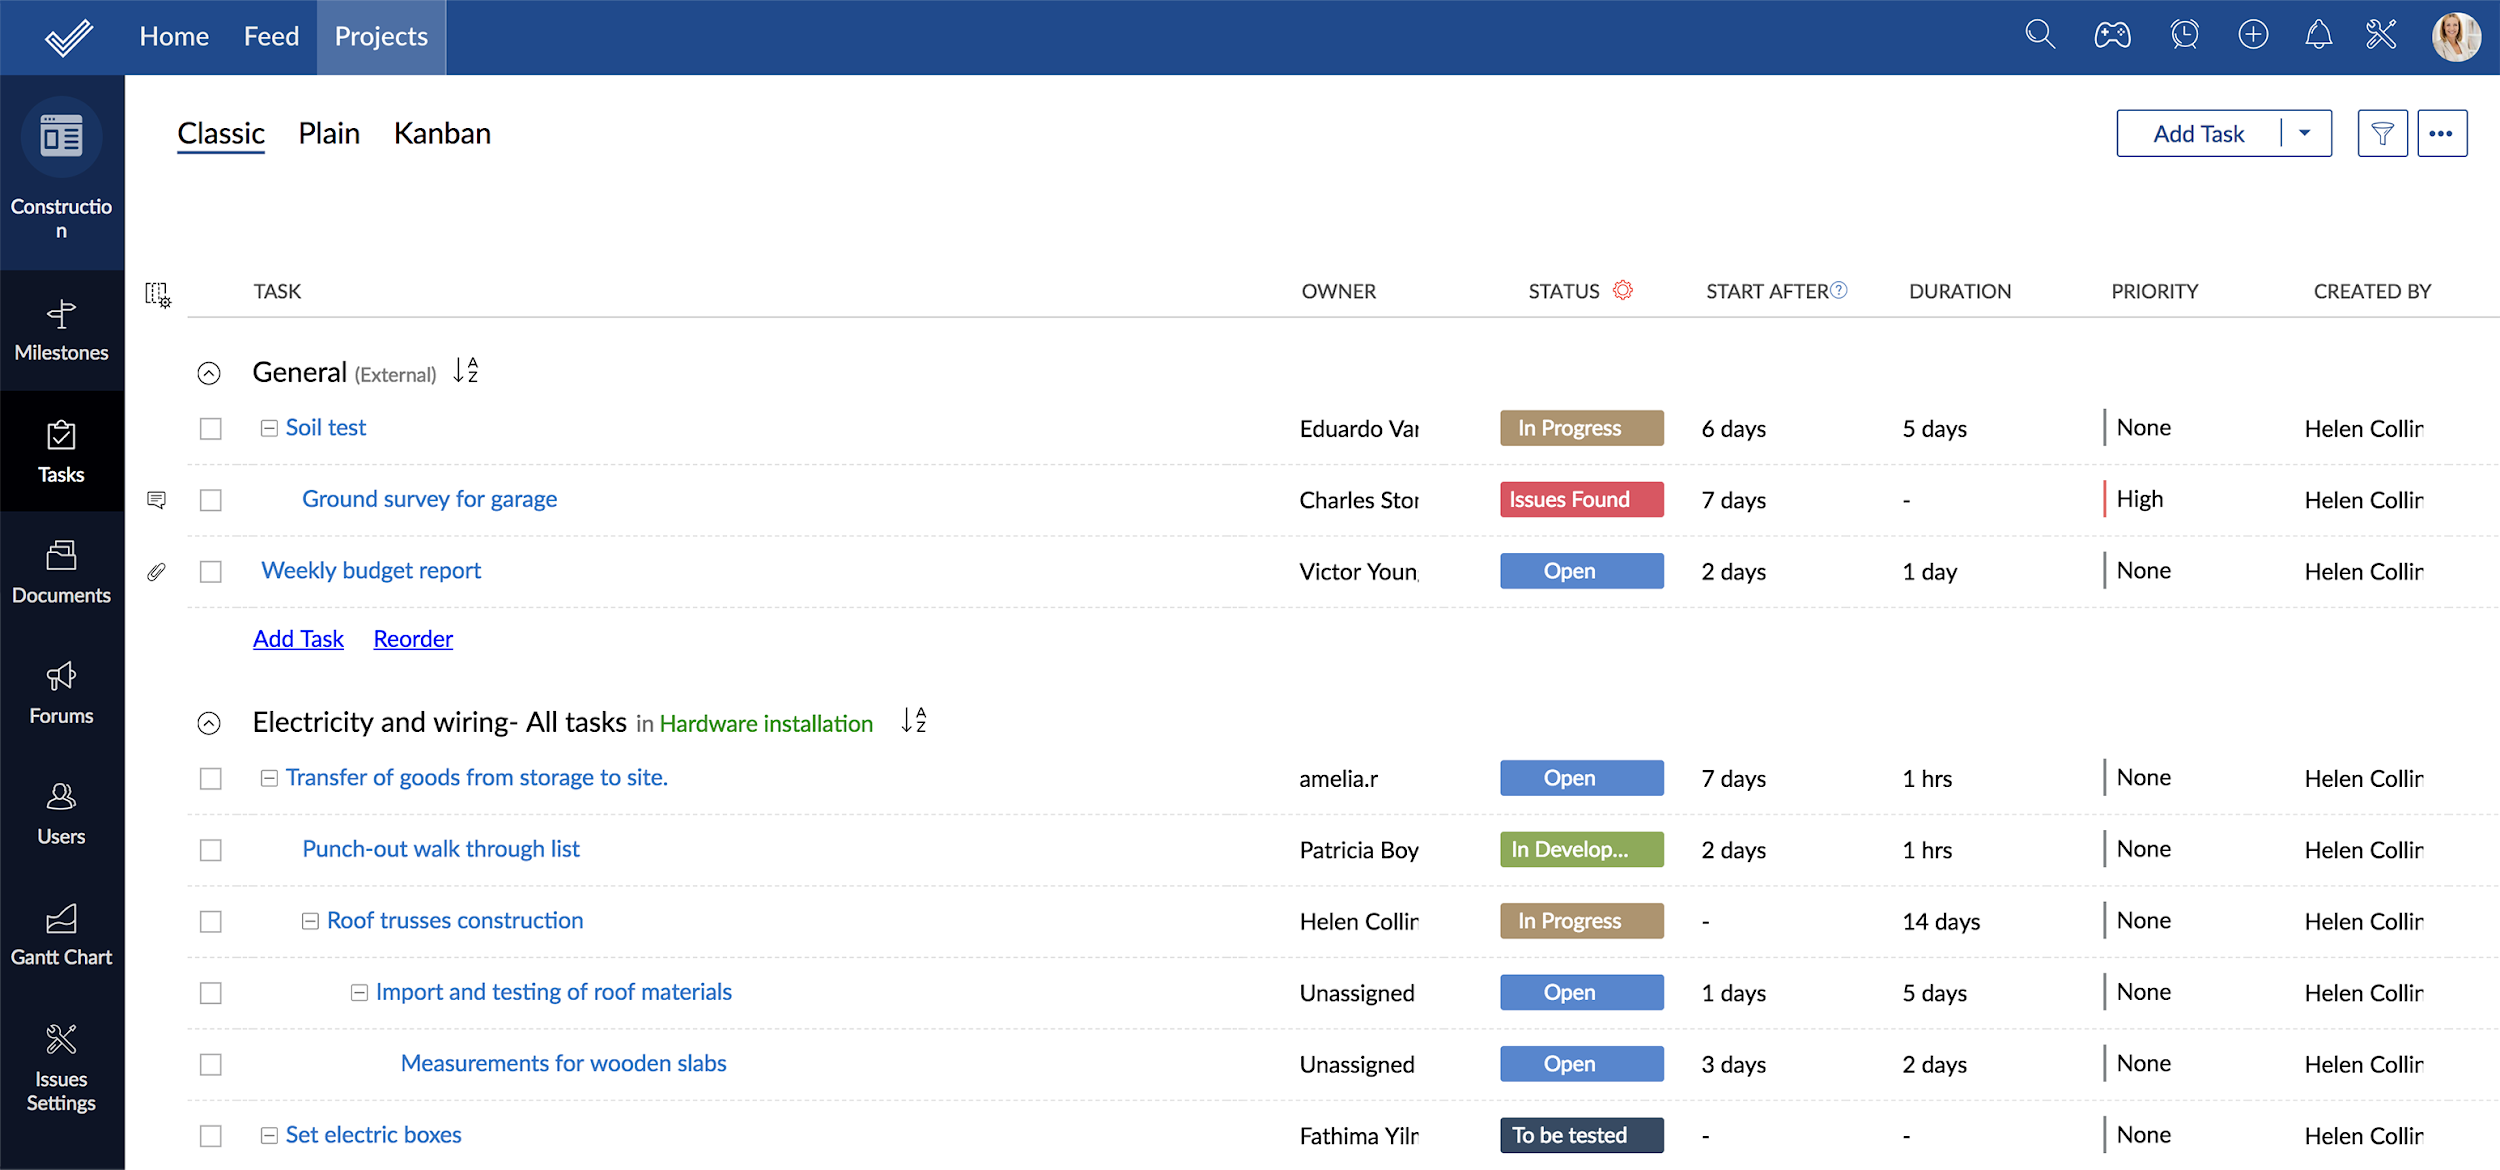 Assigning priority to projects in Zoho Projects